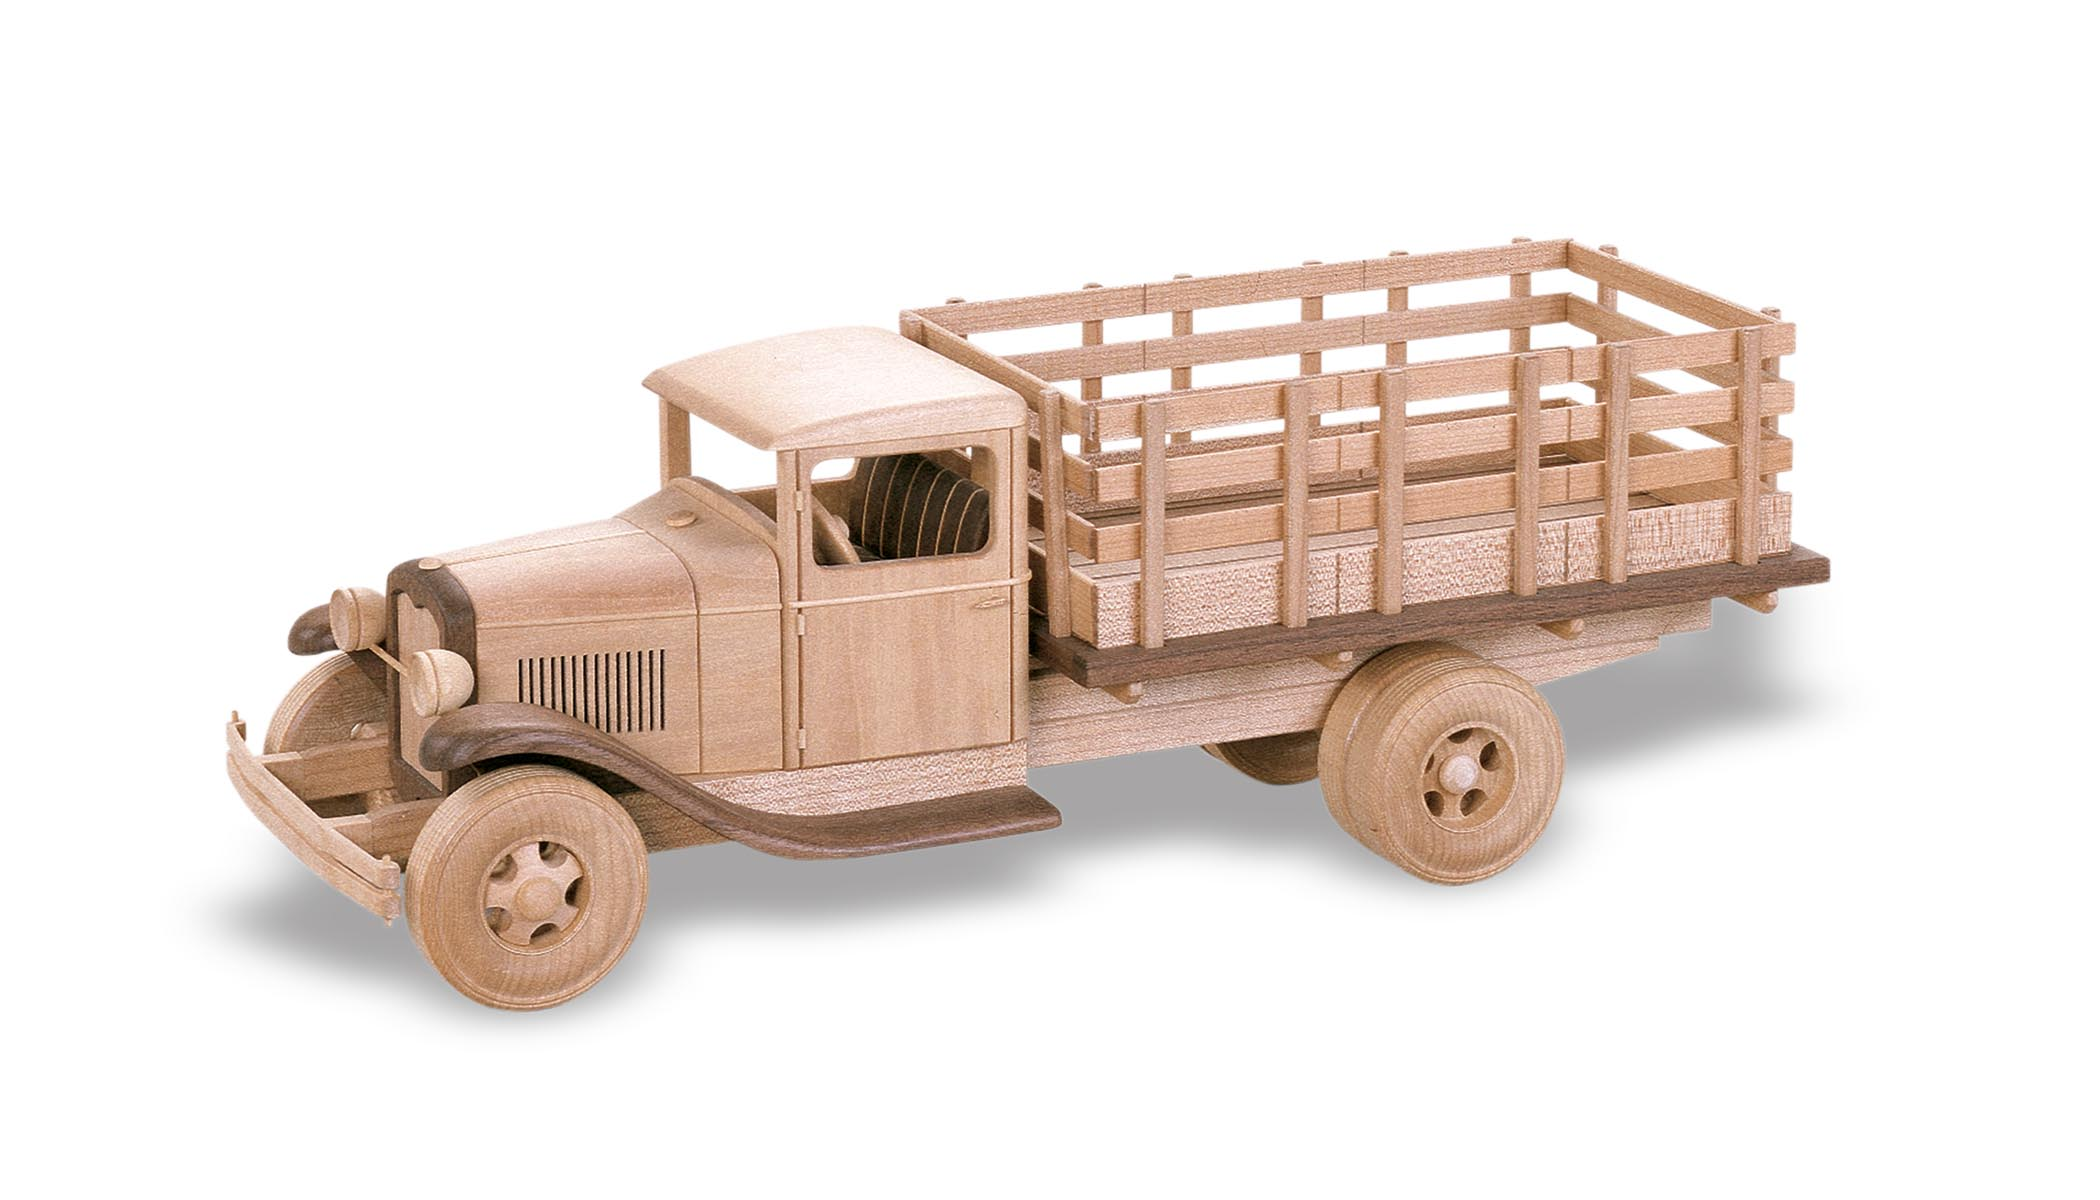 Marvelous photograph of wooden trucks 19 wooden toy parts discovery toys Car Pictures with #925739 color and 2100x1200 pixels